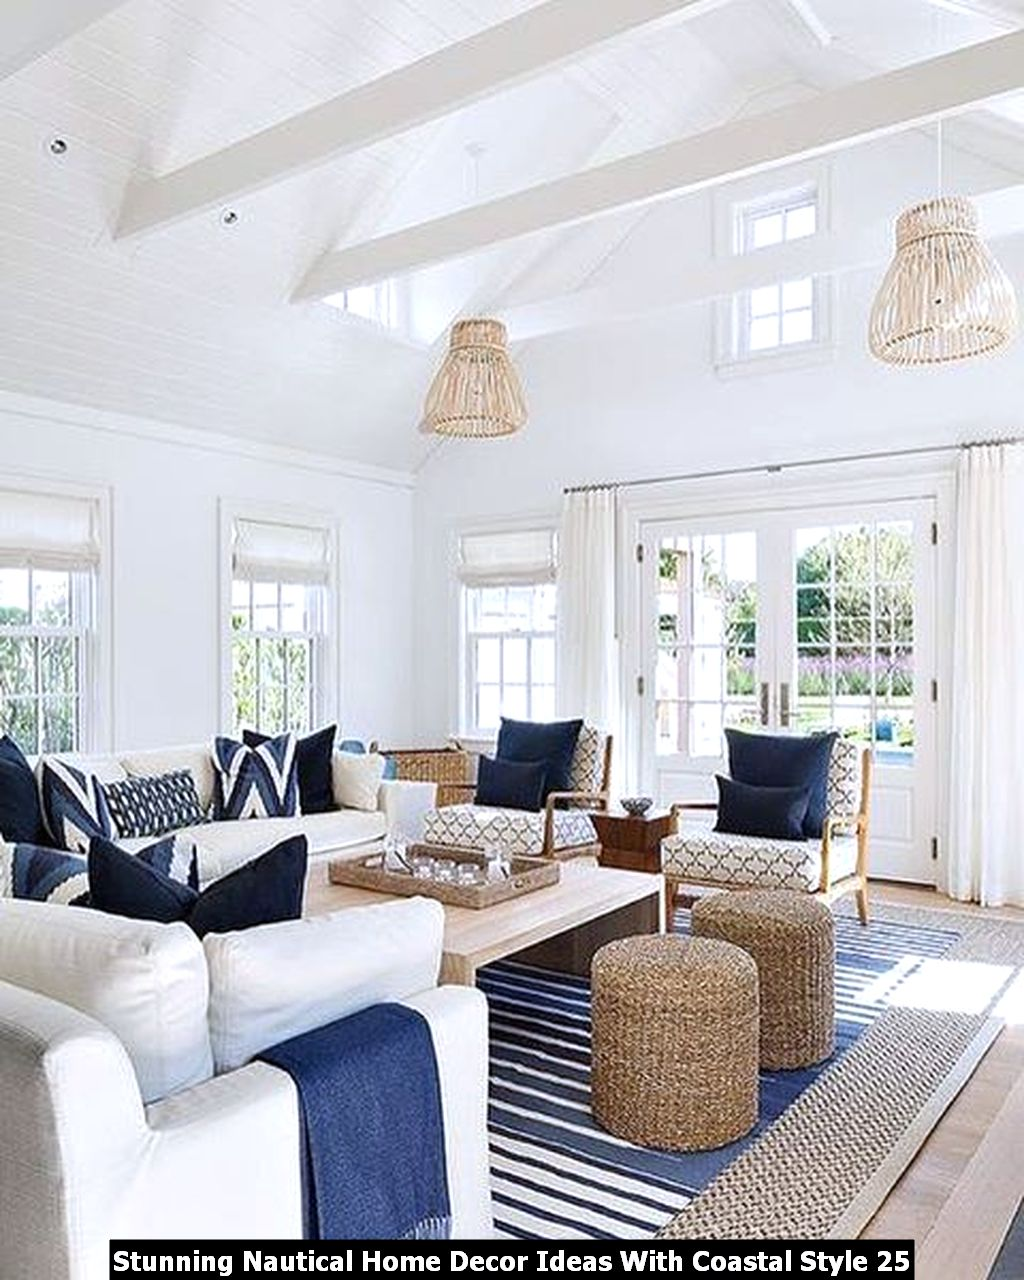 Stunning Nautical Home Decor Ideas With Coastal Style 25